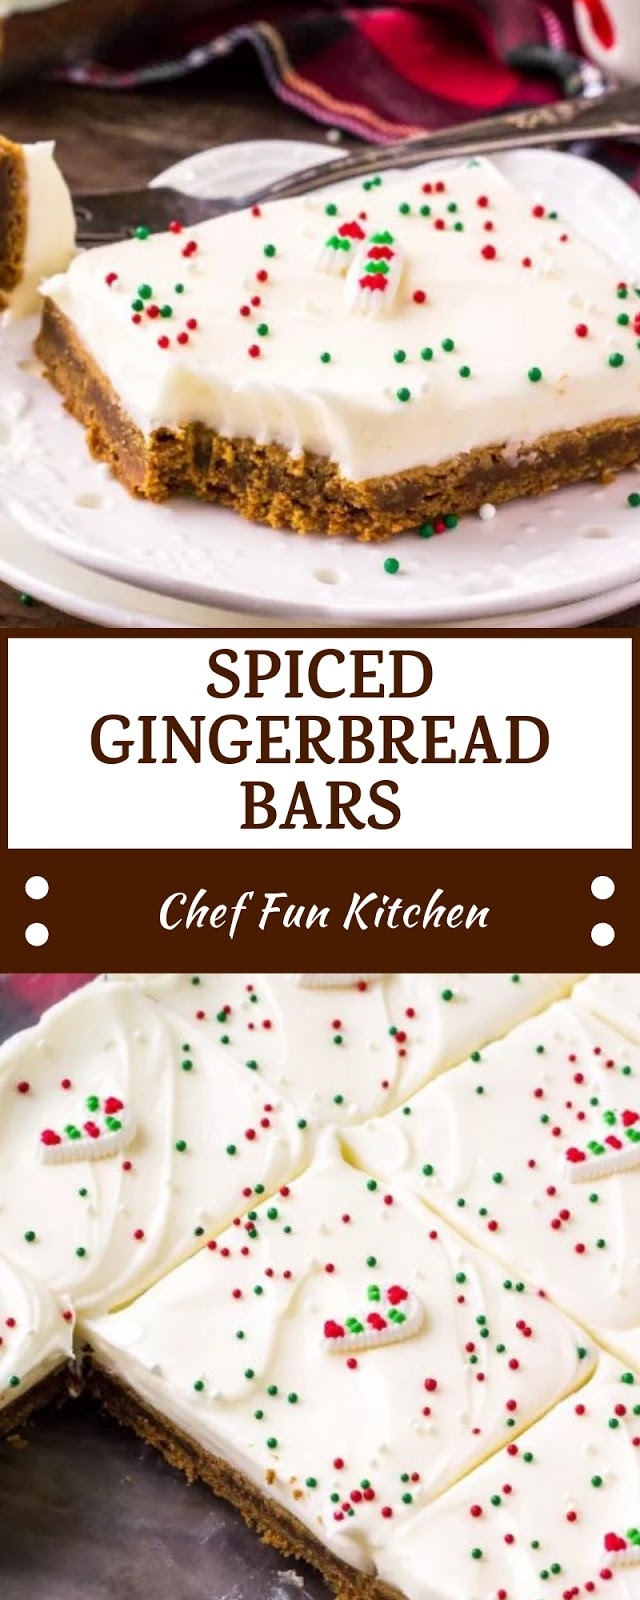 SPICED GINGERBREAD BARS